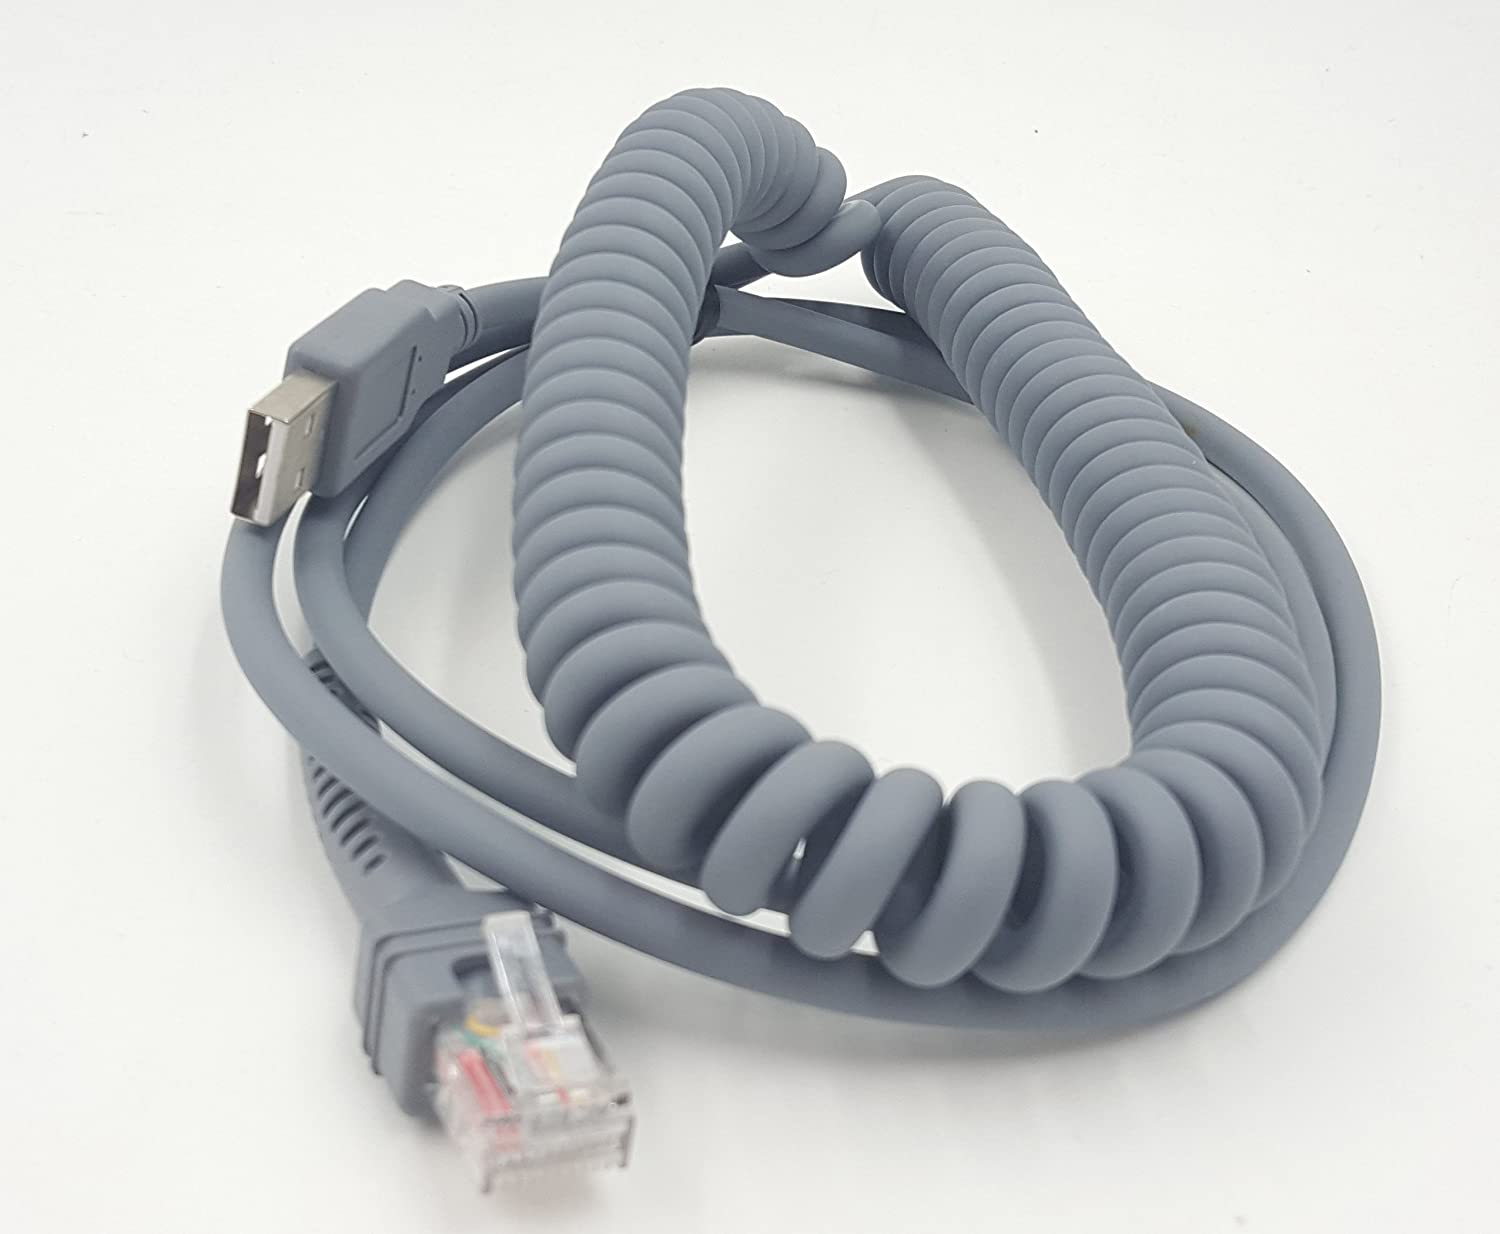 Amazon symbol ls2208 usb cablesinloon usb a to rj45 coiled amazon symbol ls2208 usb cablesinloon usb a to rj45 coiled spiral extension cable motorola symbol barcode scanner ls2208ap ls1203 ls4208 ls4278 biocorpaavc Gallery